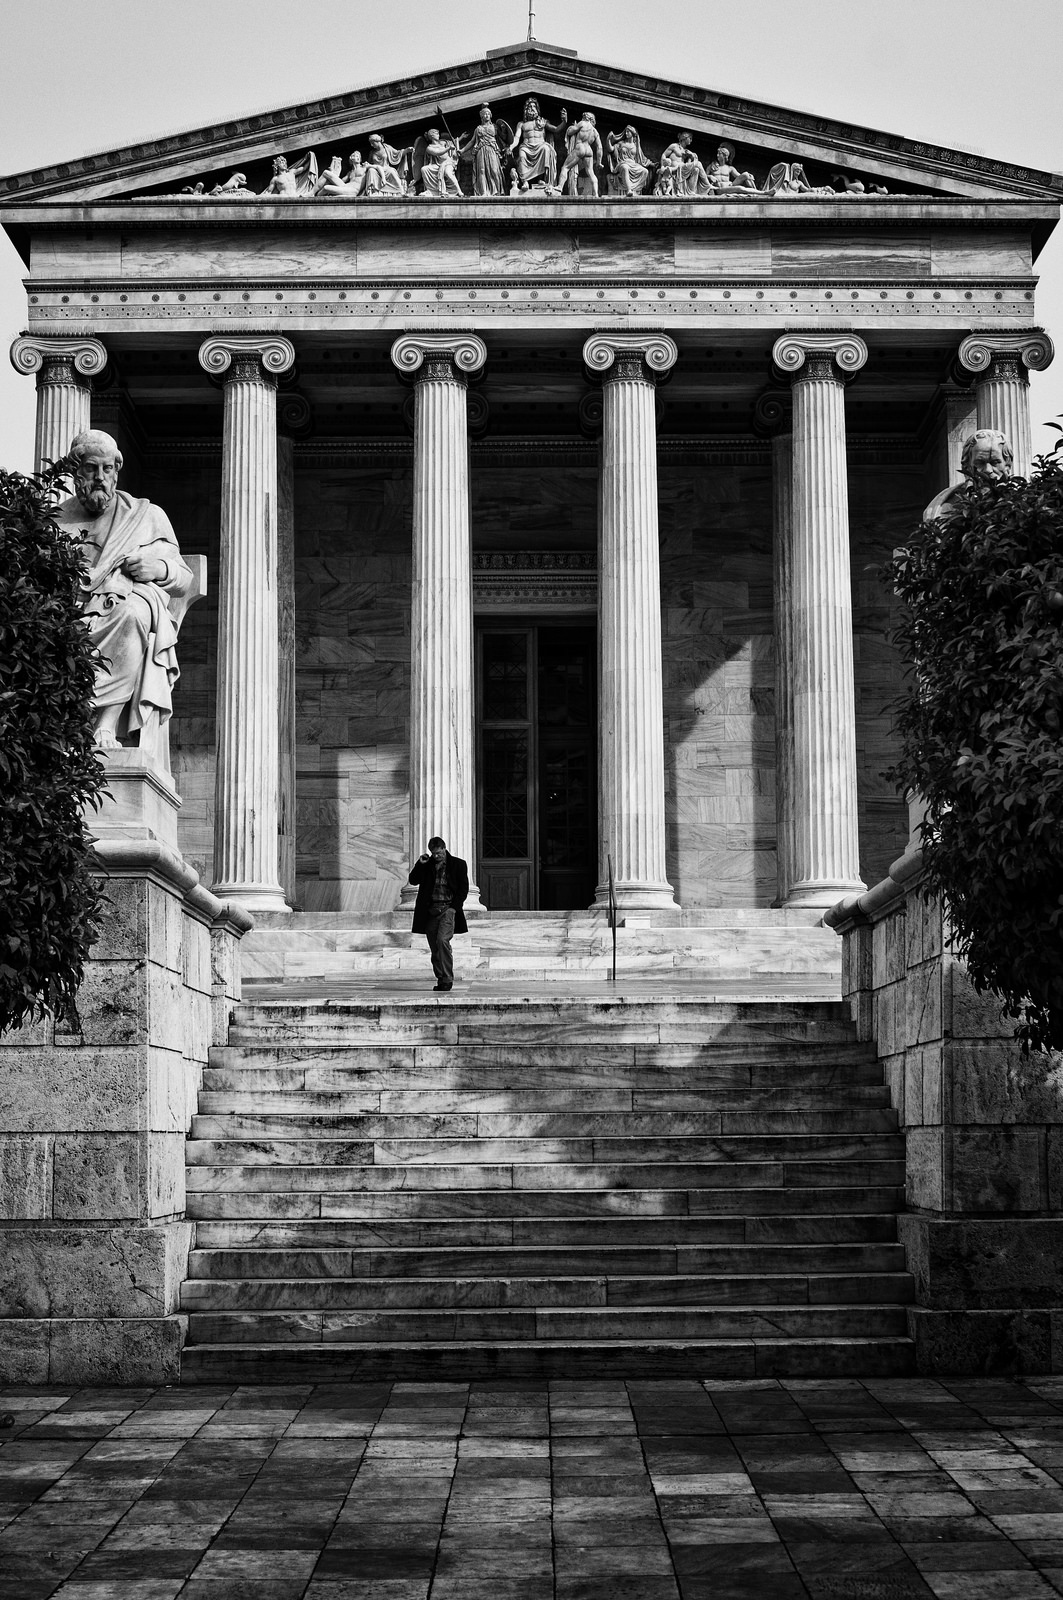 Street Focus 24: Streets Of The World - Athens with Spyros